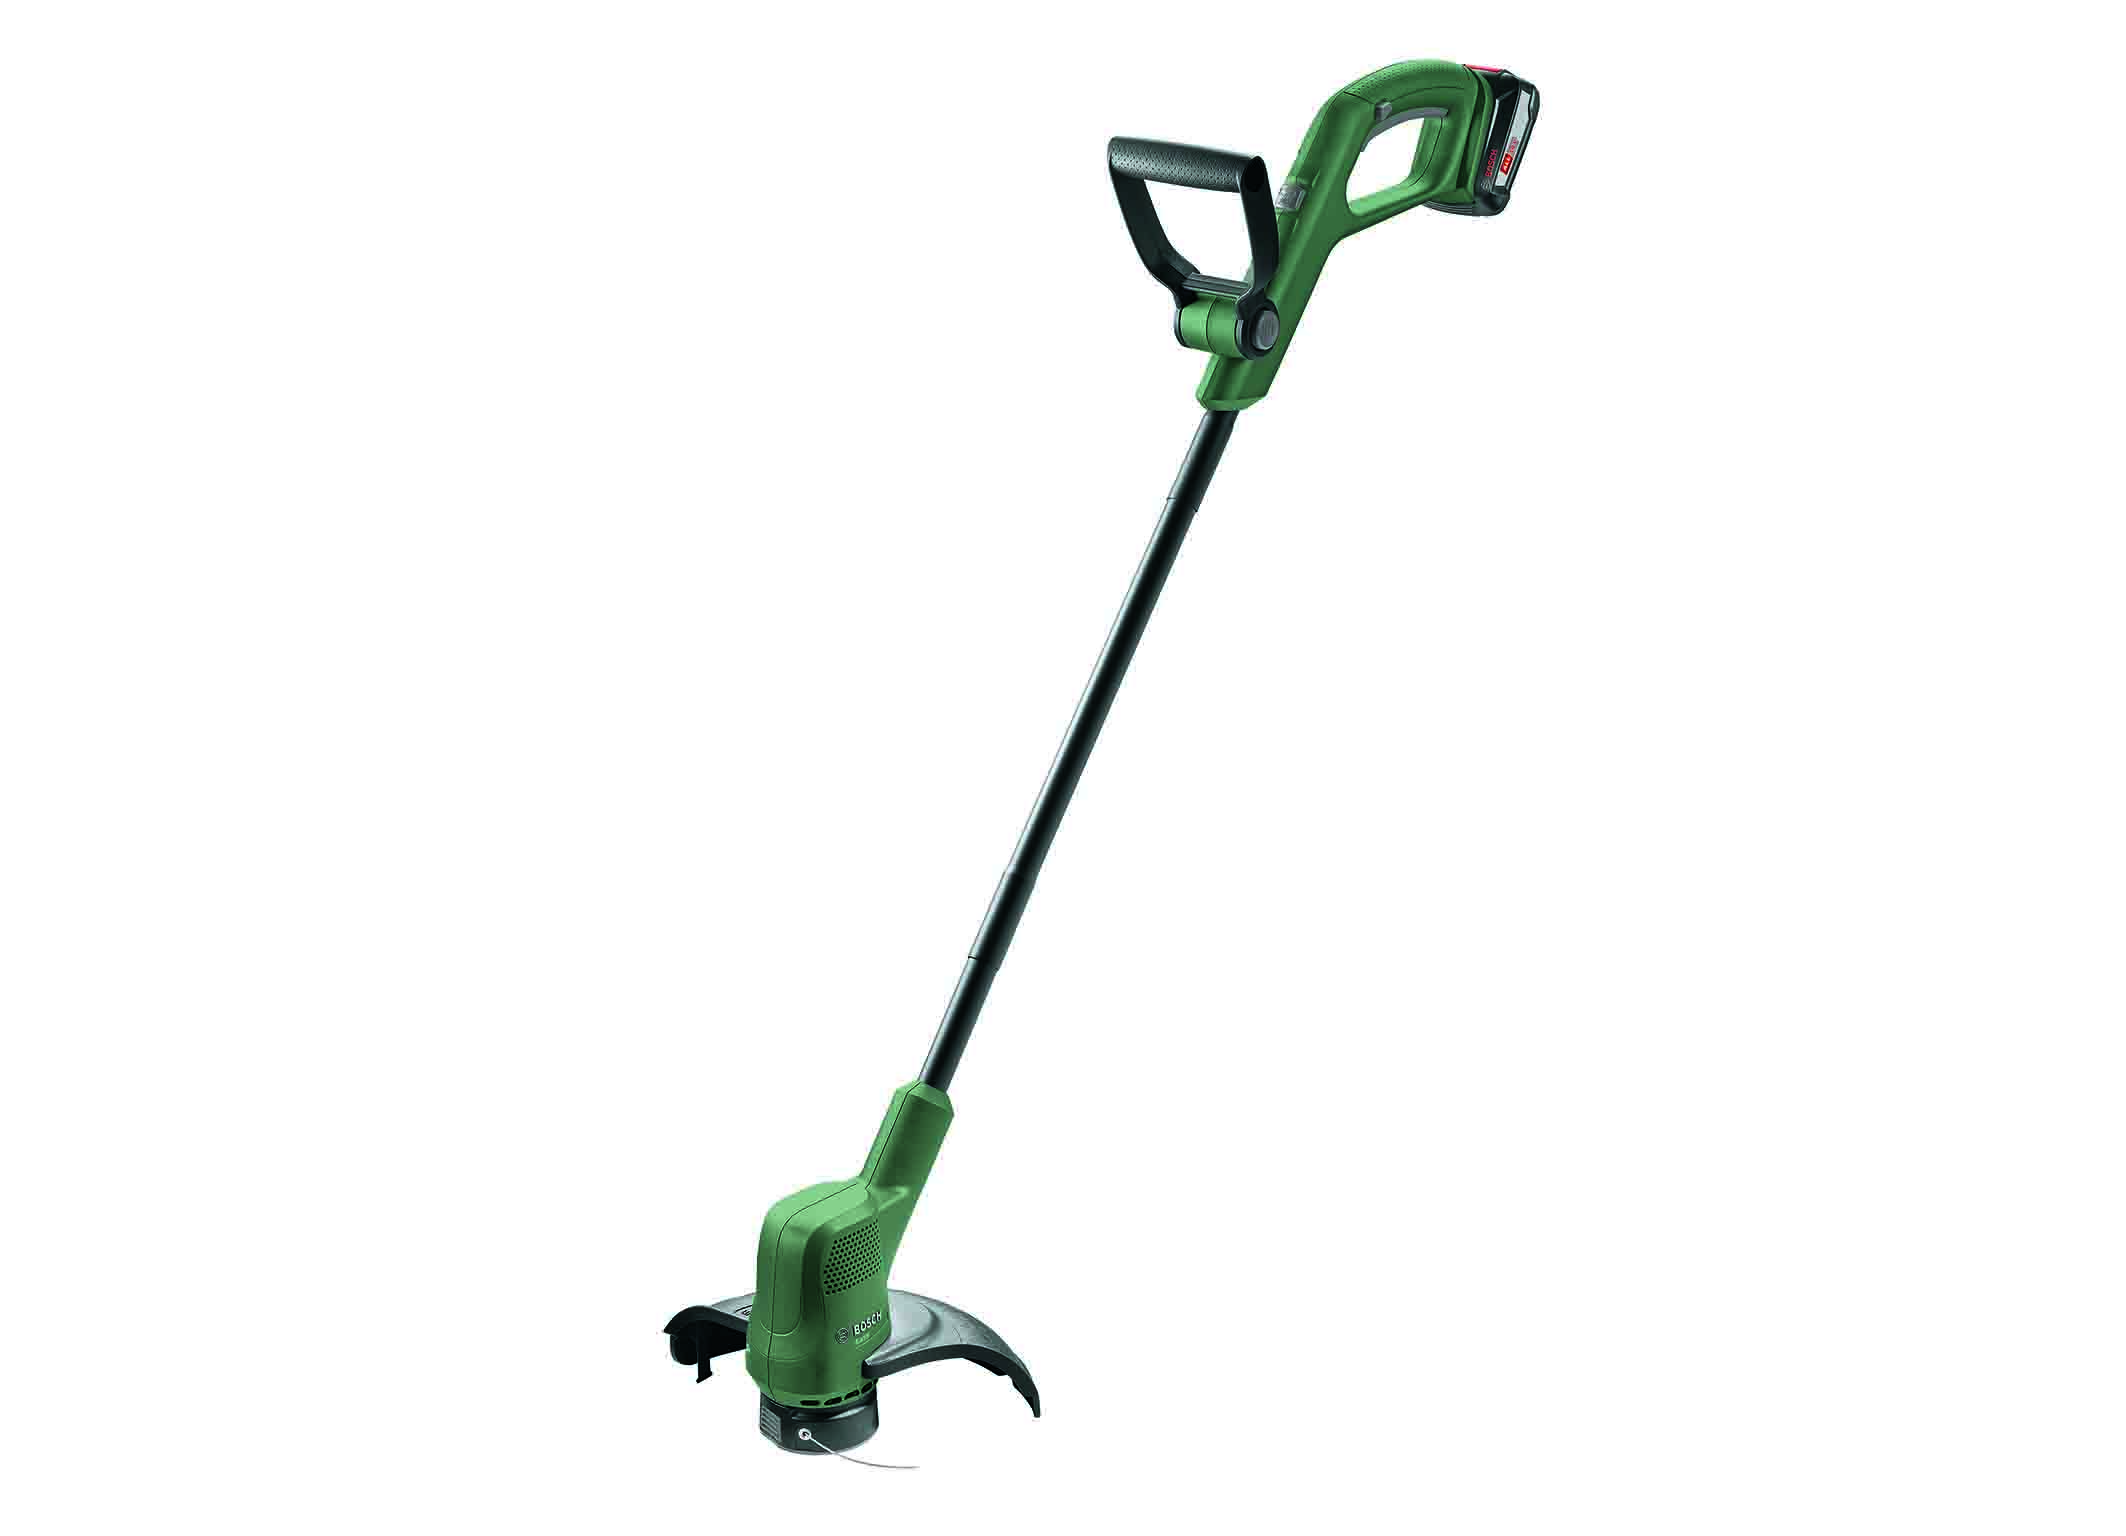 The new 18 volt trimmers from Bosch: EasyGrassCut 18 for smaller gardens